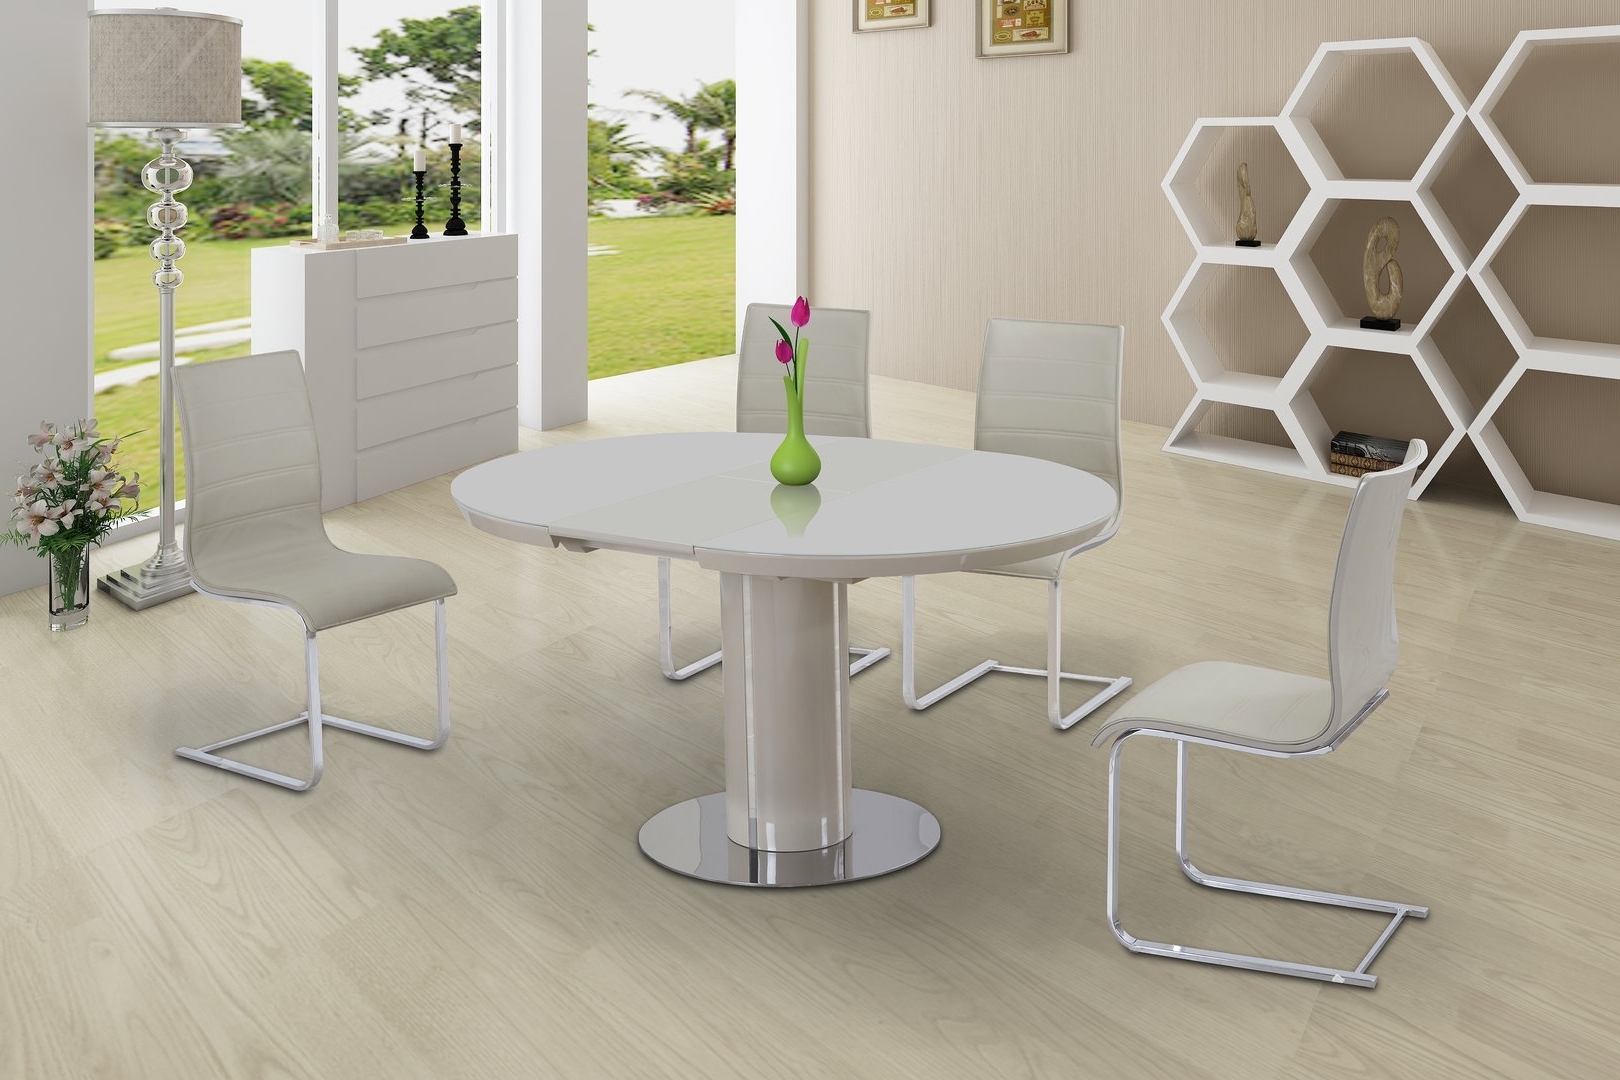 Famous Gloss Dining Tables And Chairs Regarding Round Cream Glass High Gloss Dining Table & 4 Chairs – Homegenies (View 11 of 25)